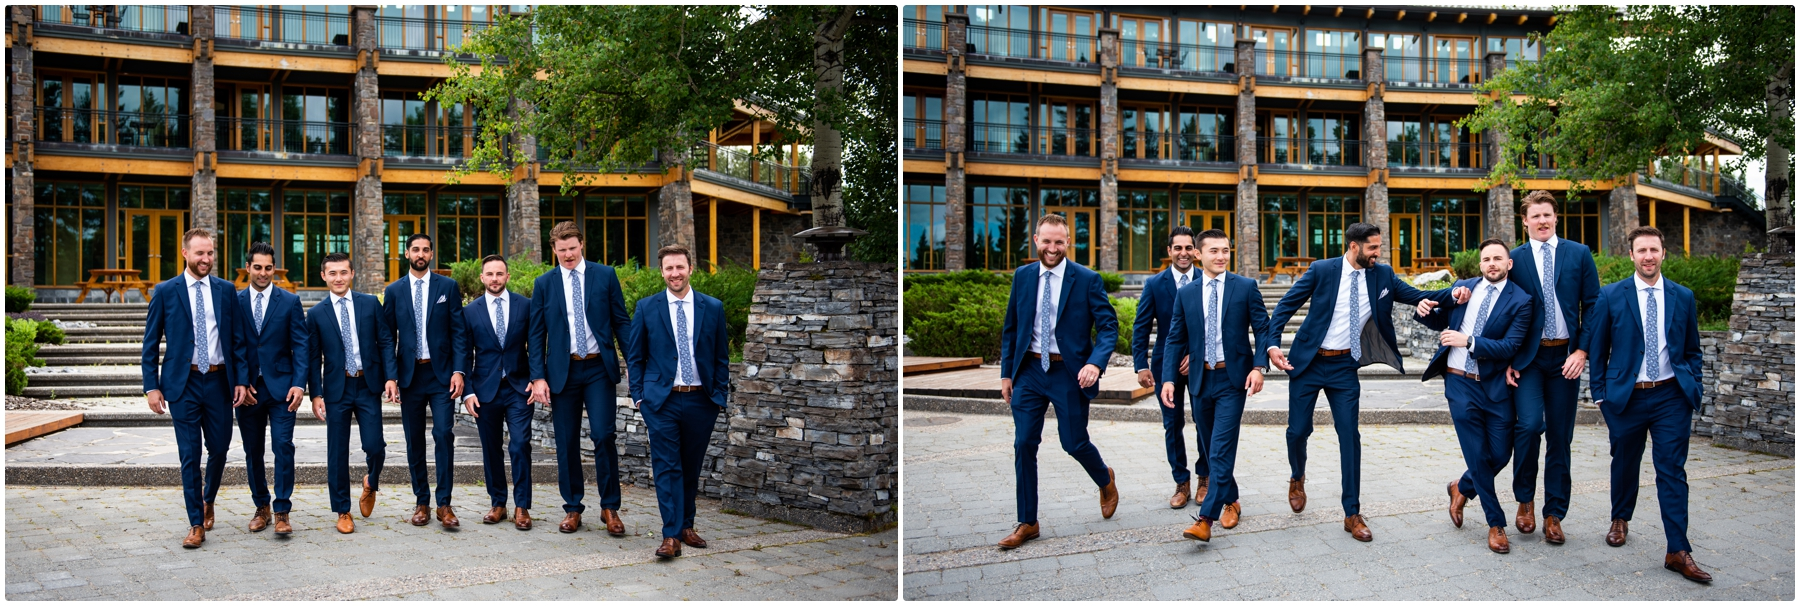 Azuridge Estate Hotel Wedding - Groomsmen Photos